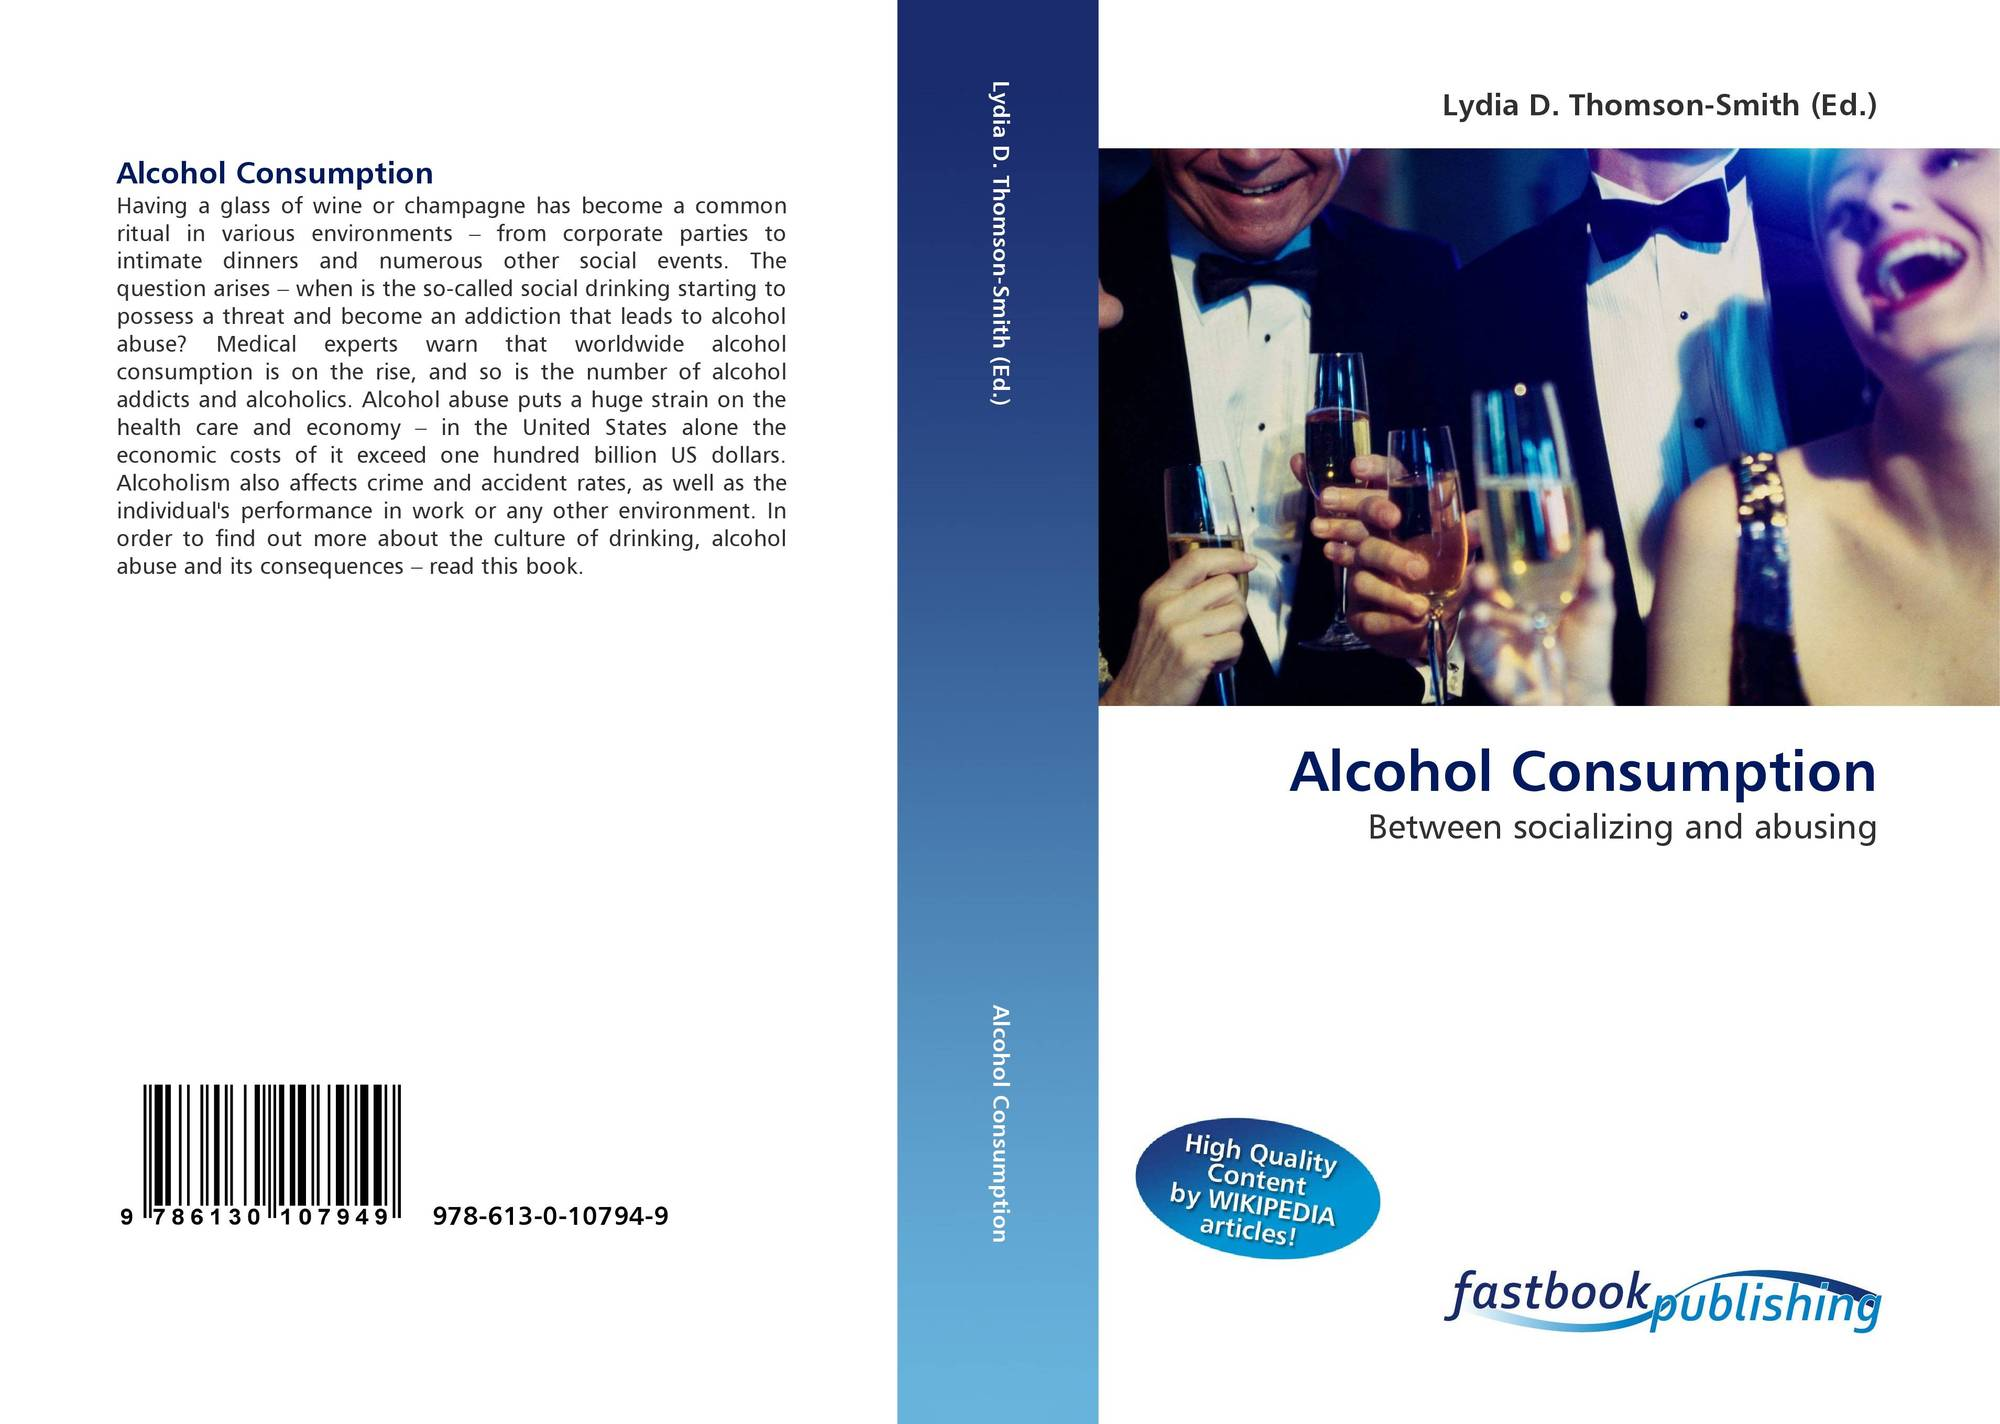 an analysis of excessive alcohol consumption and its effects